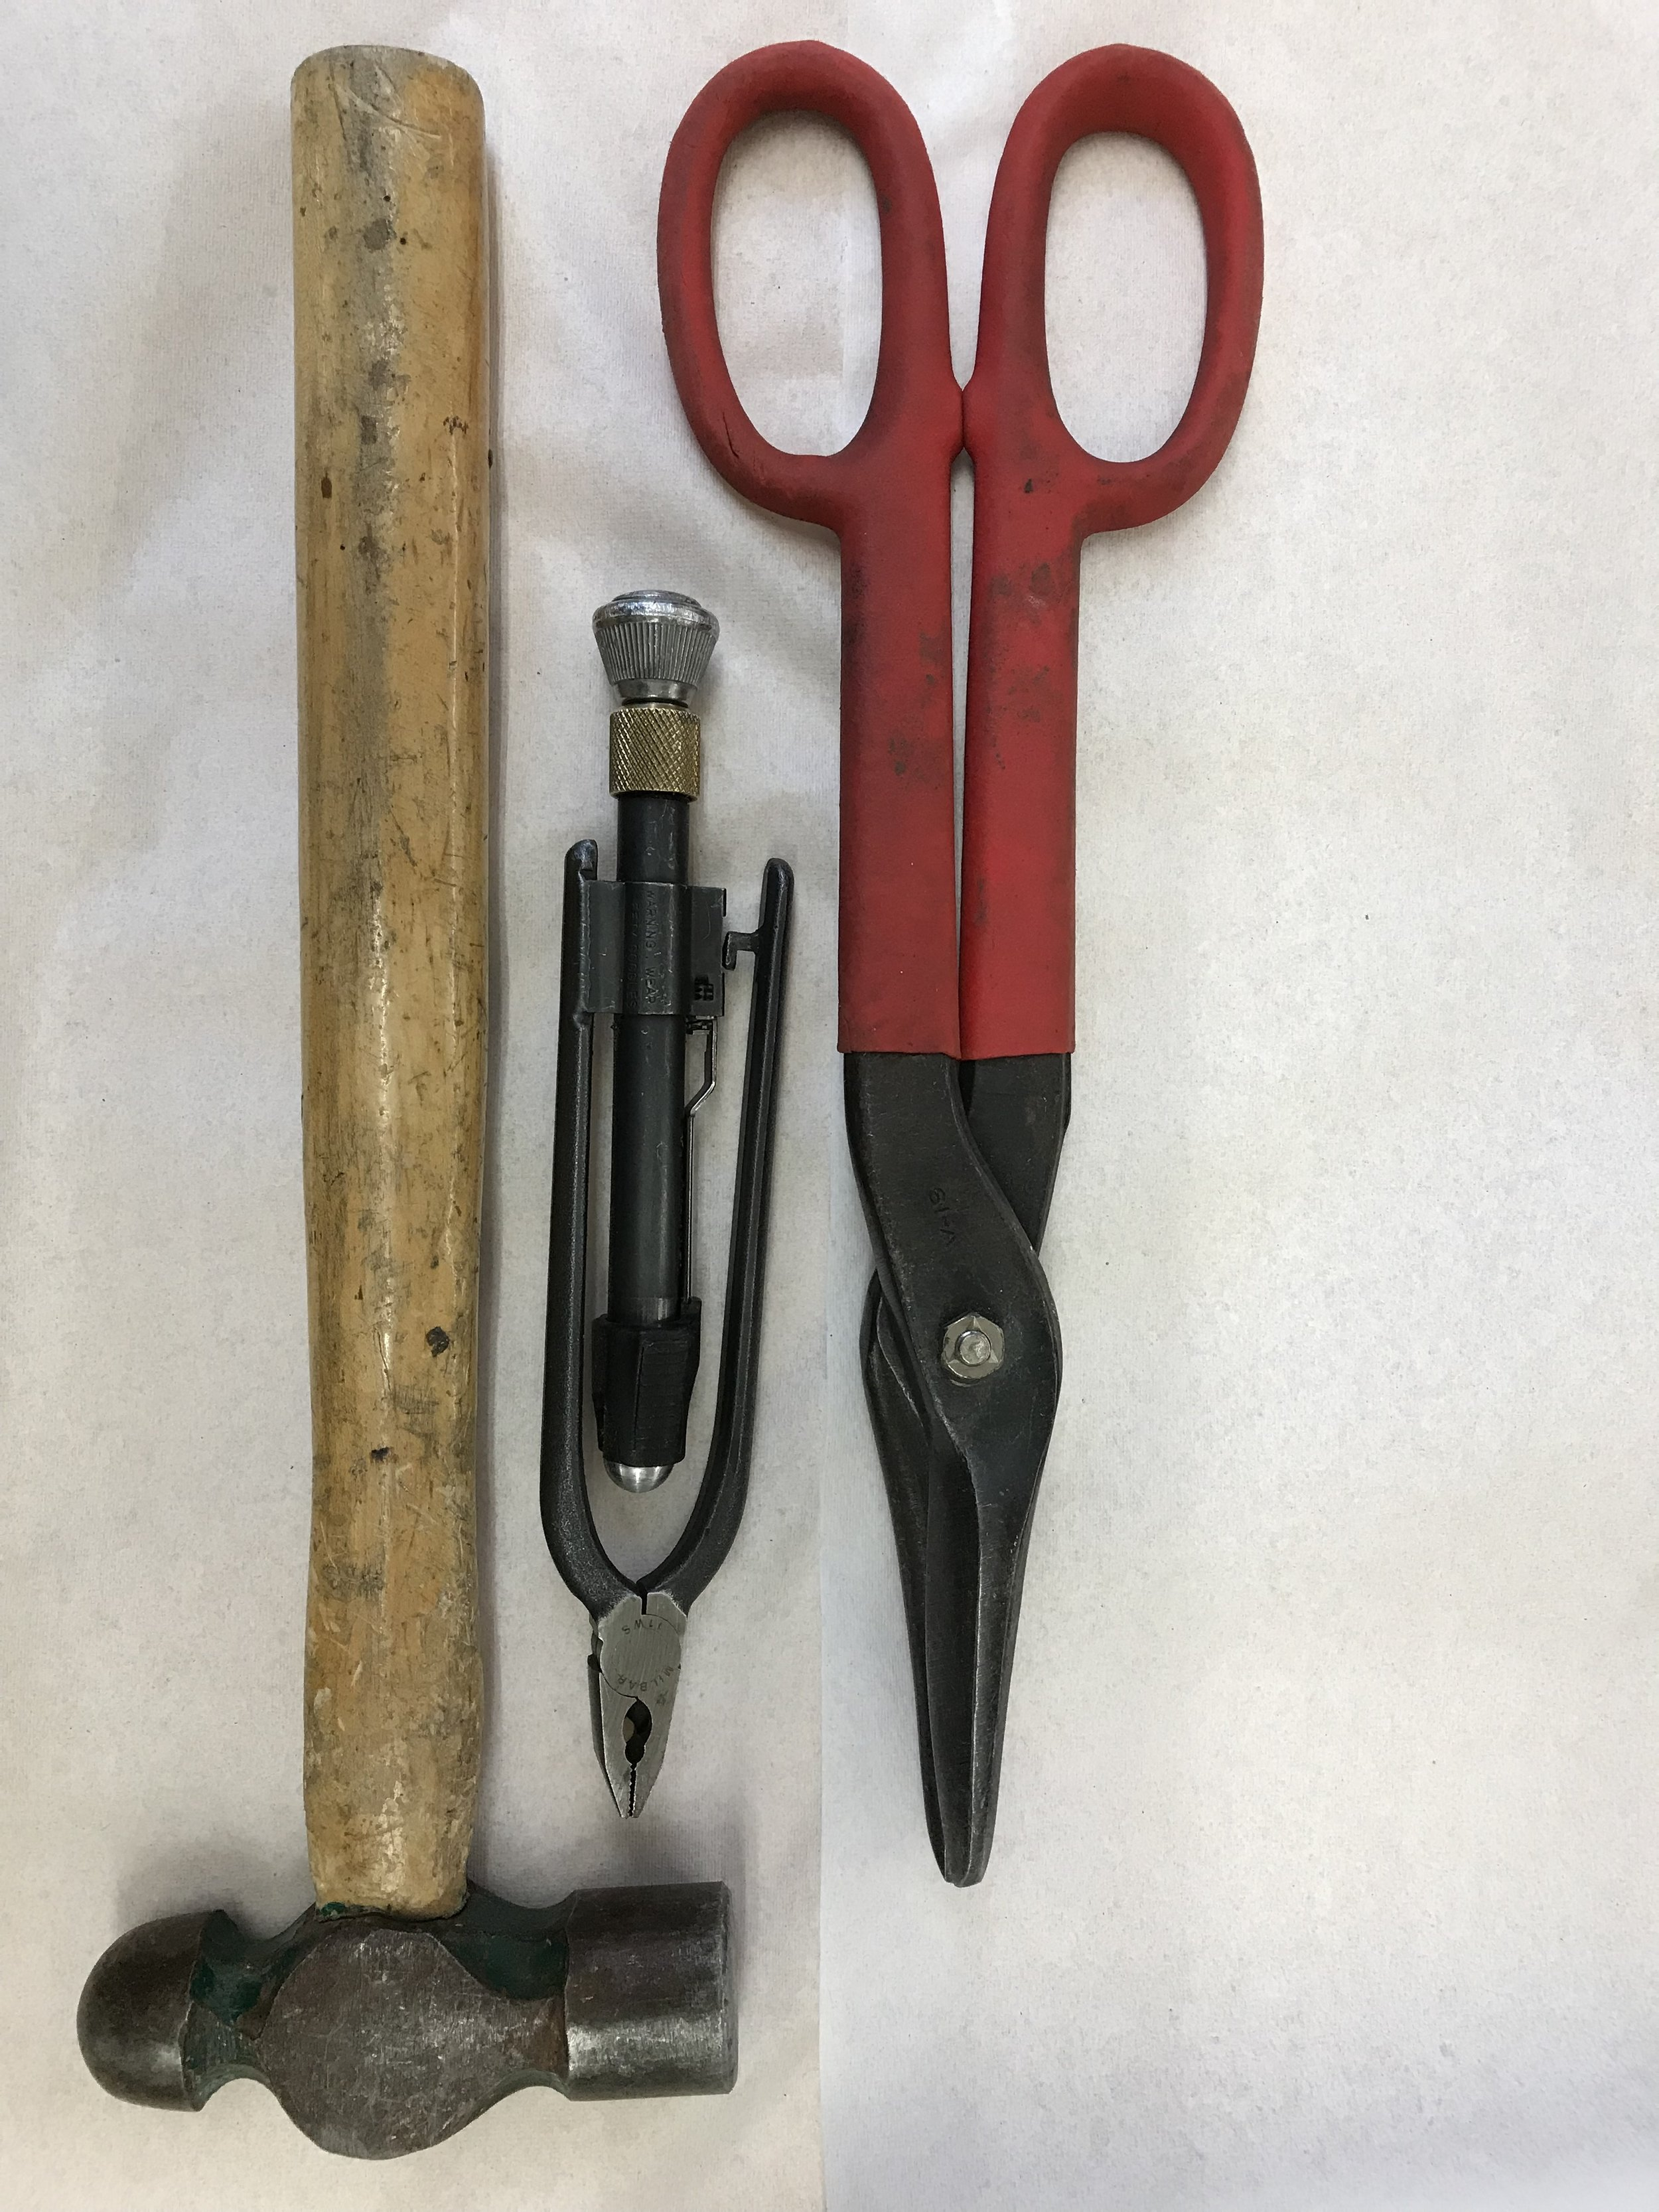 The tools   I use a hammer to manipulate the lath and to smash the sharp edges of the cut lath. The pliers are used to tie or twist the ties to secure the lath to the armature. The clippers are used to cut the lath.